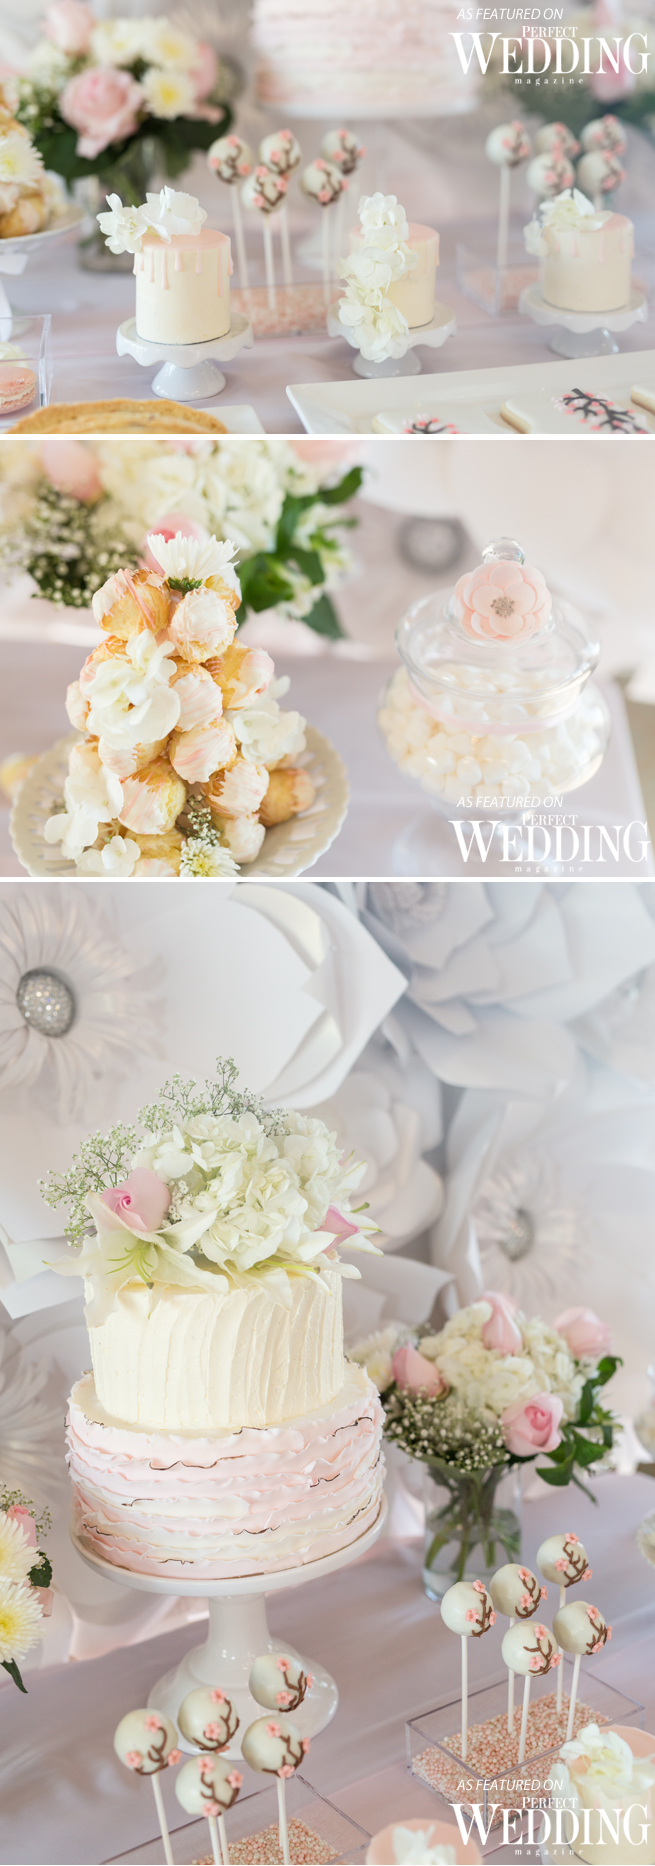 Cherry Blossom, Perfect Wedding Magazine, Perfect Wedding Blog, Wedding decor Inspiration, Spring Wedding Decor,